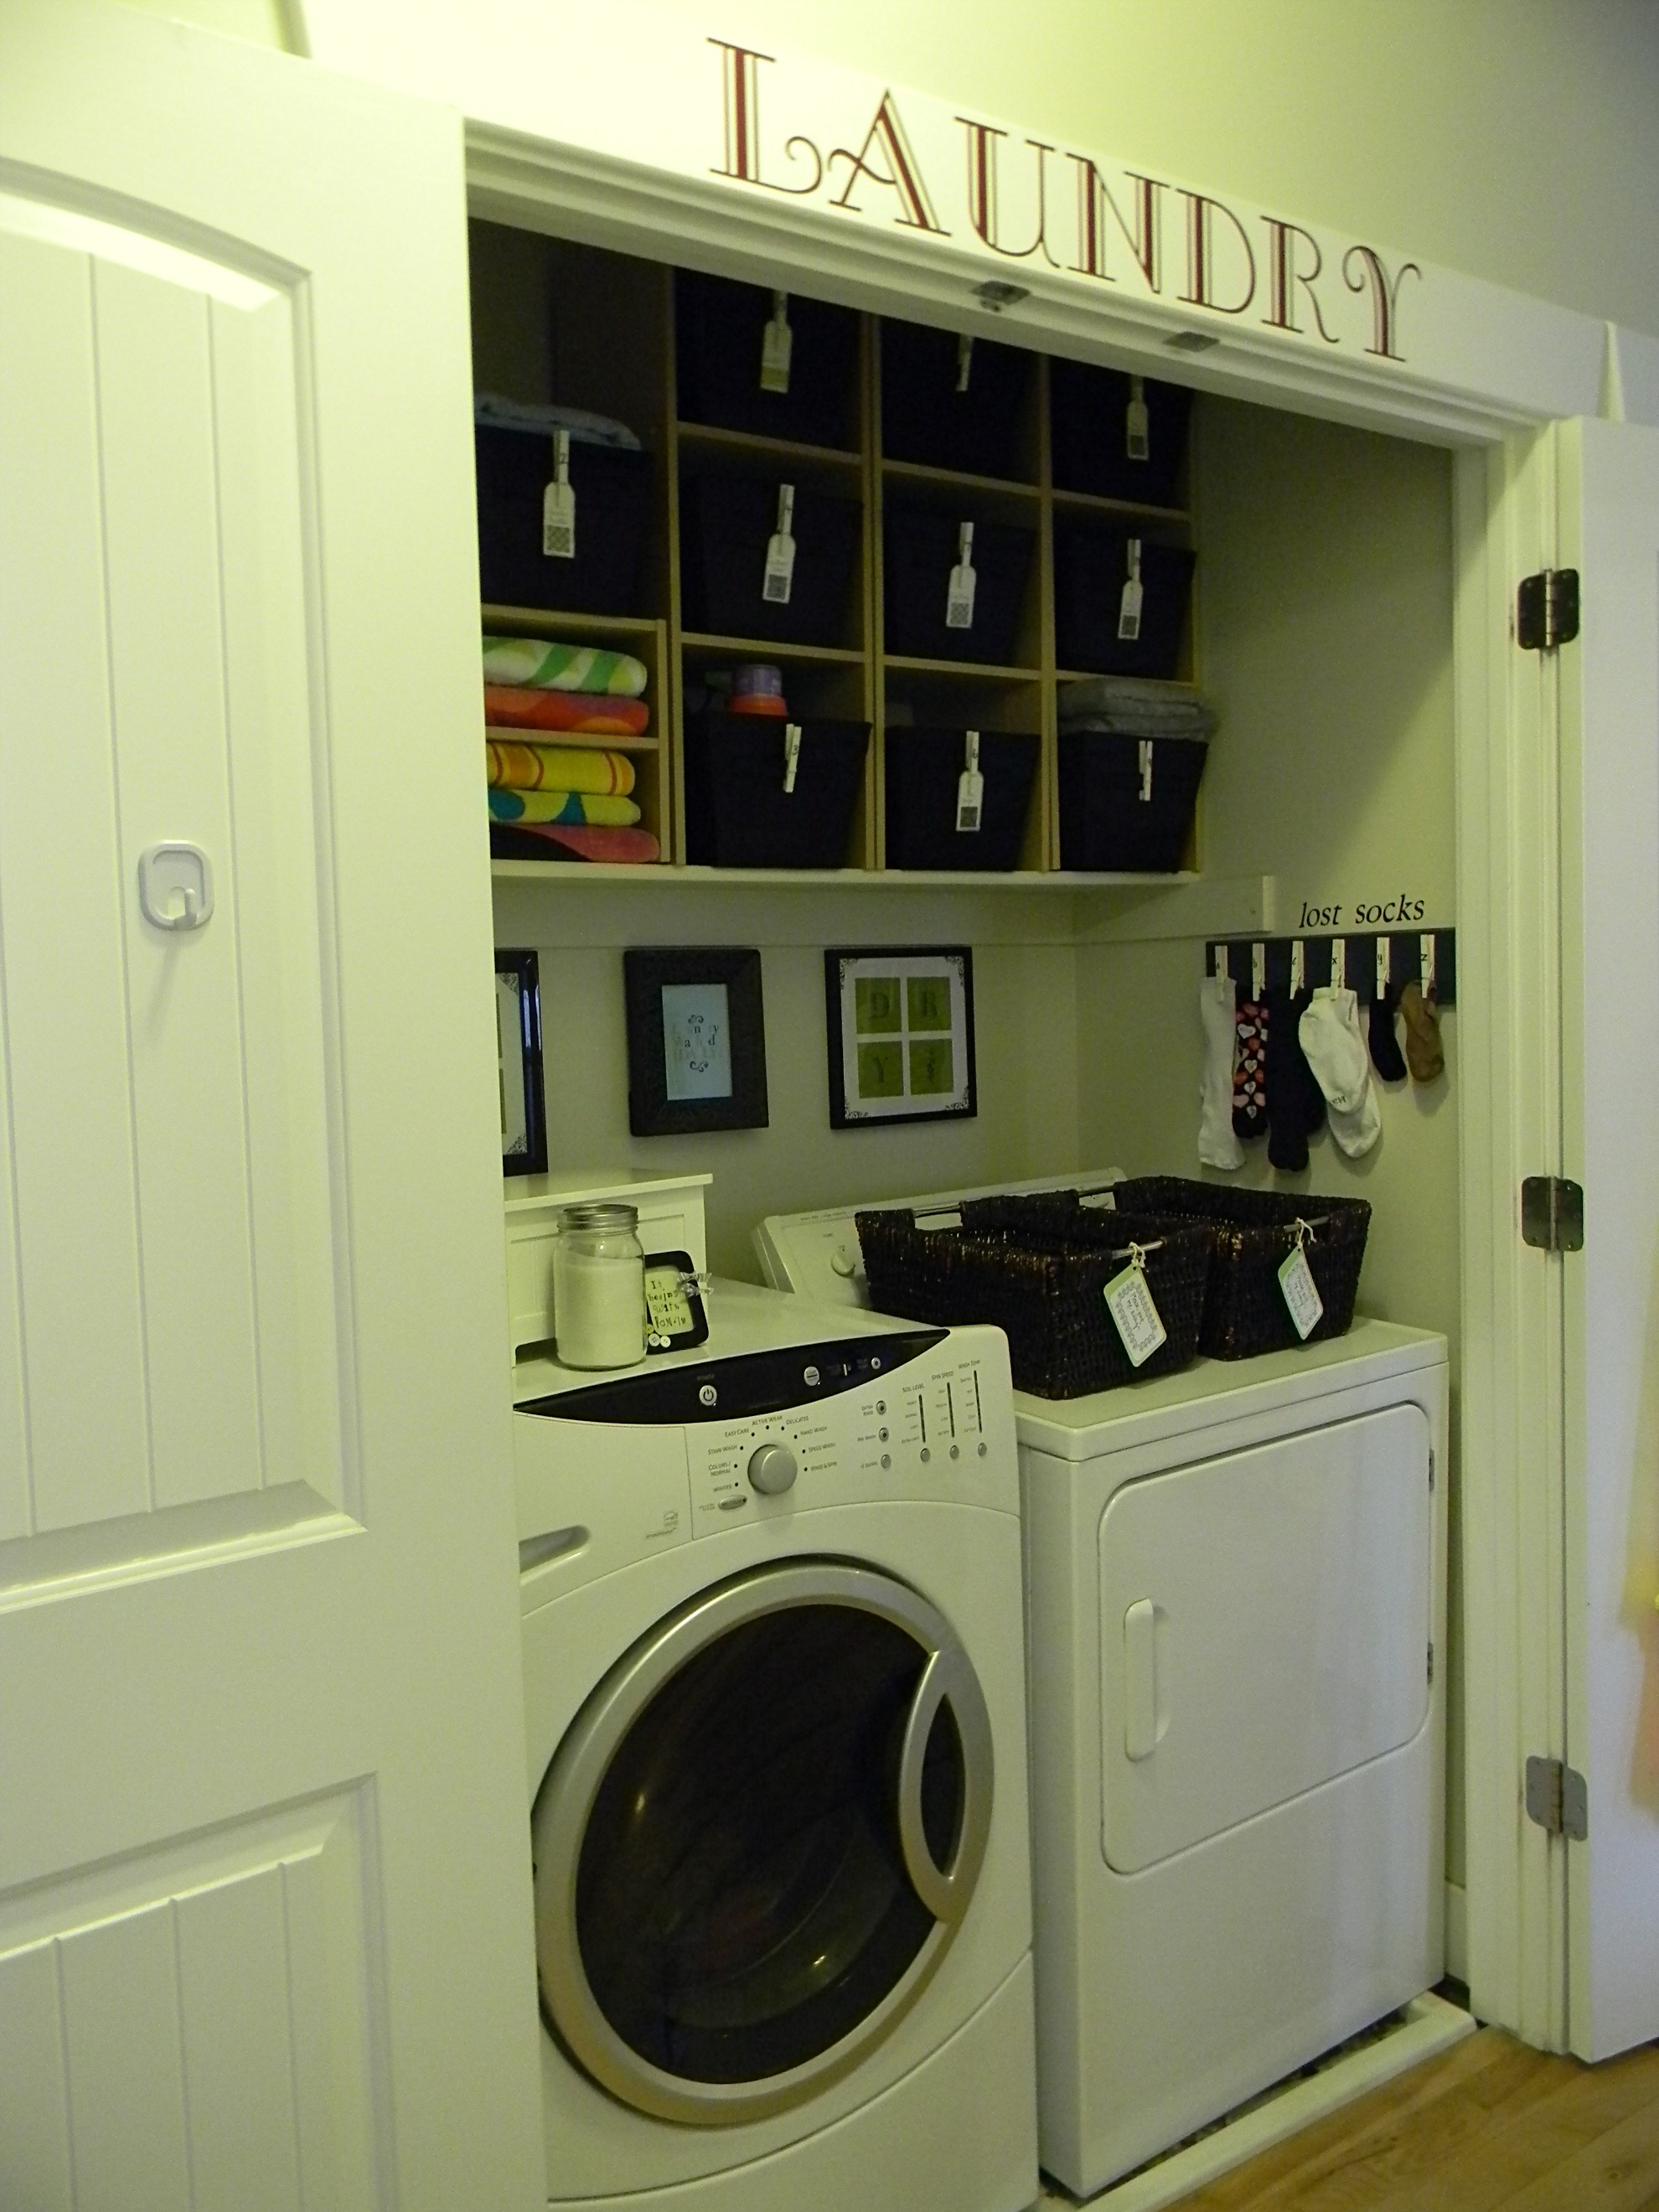 Laundry Closet Anyone?